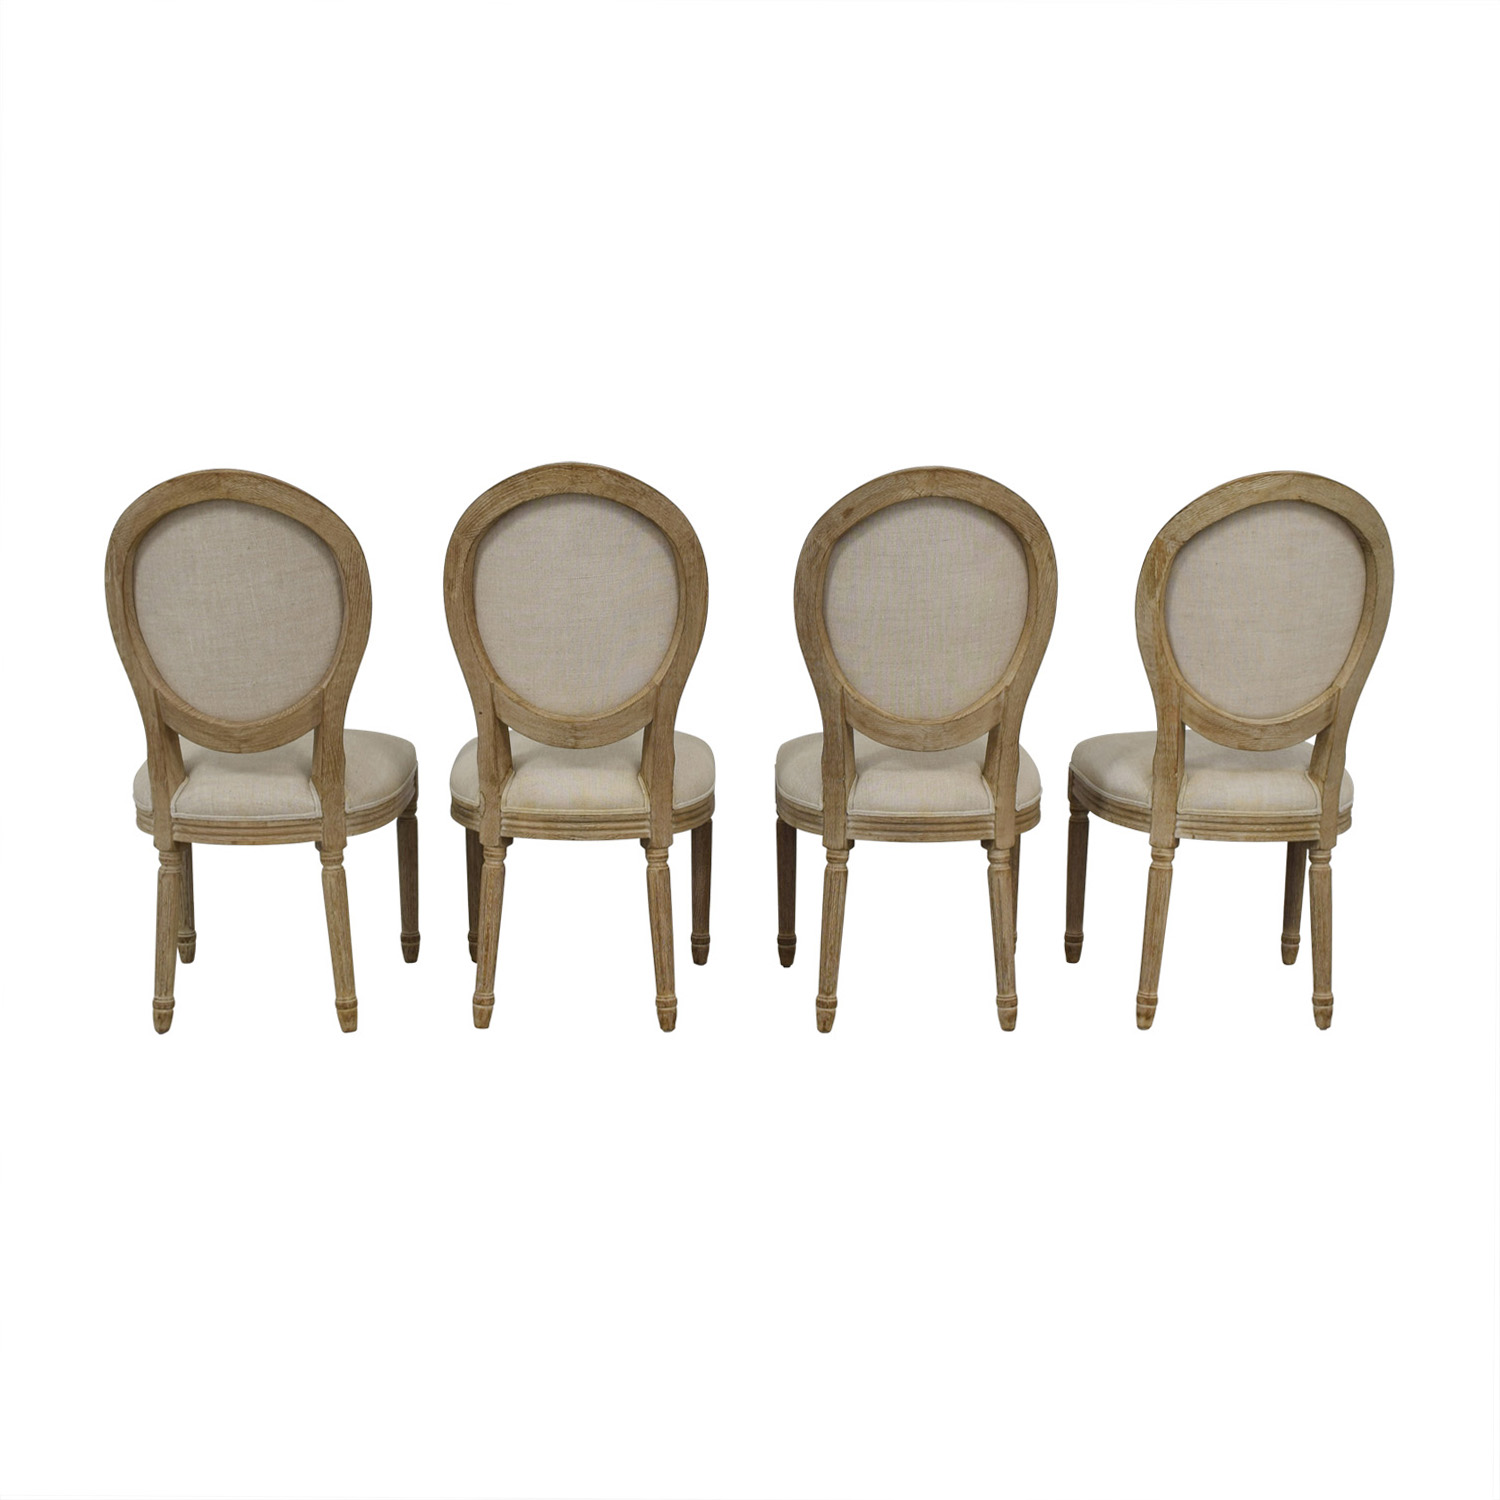 75 Off Restoration Hardware Restoration Hardware Vintage French Round Dining Chairs Chairs